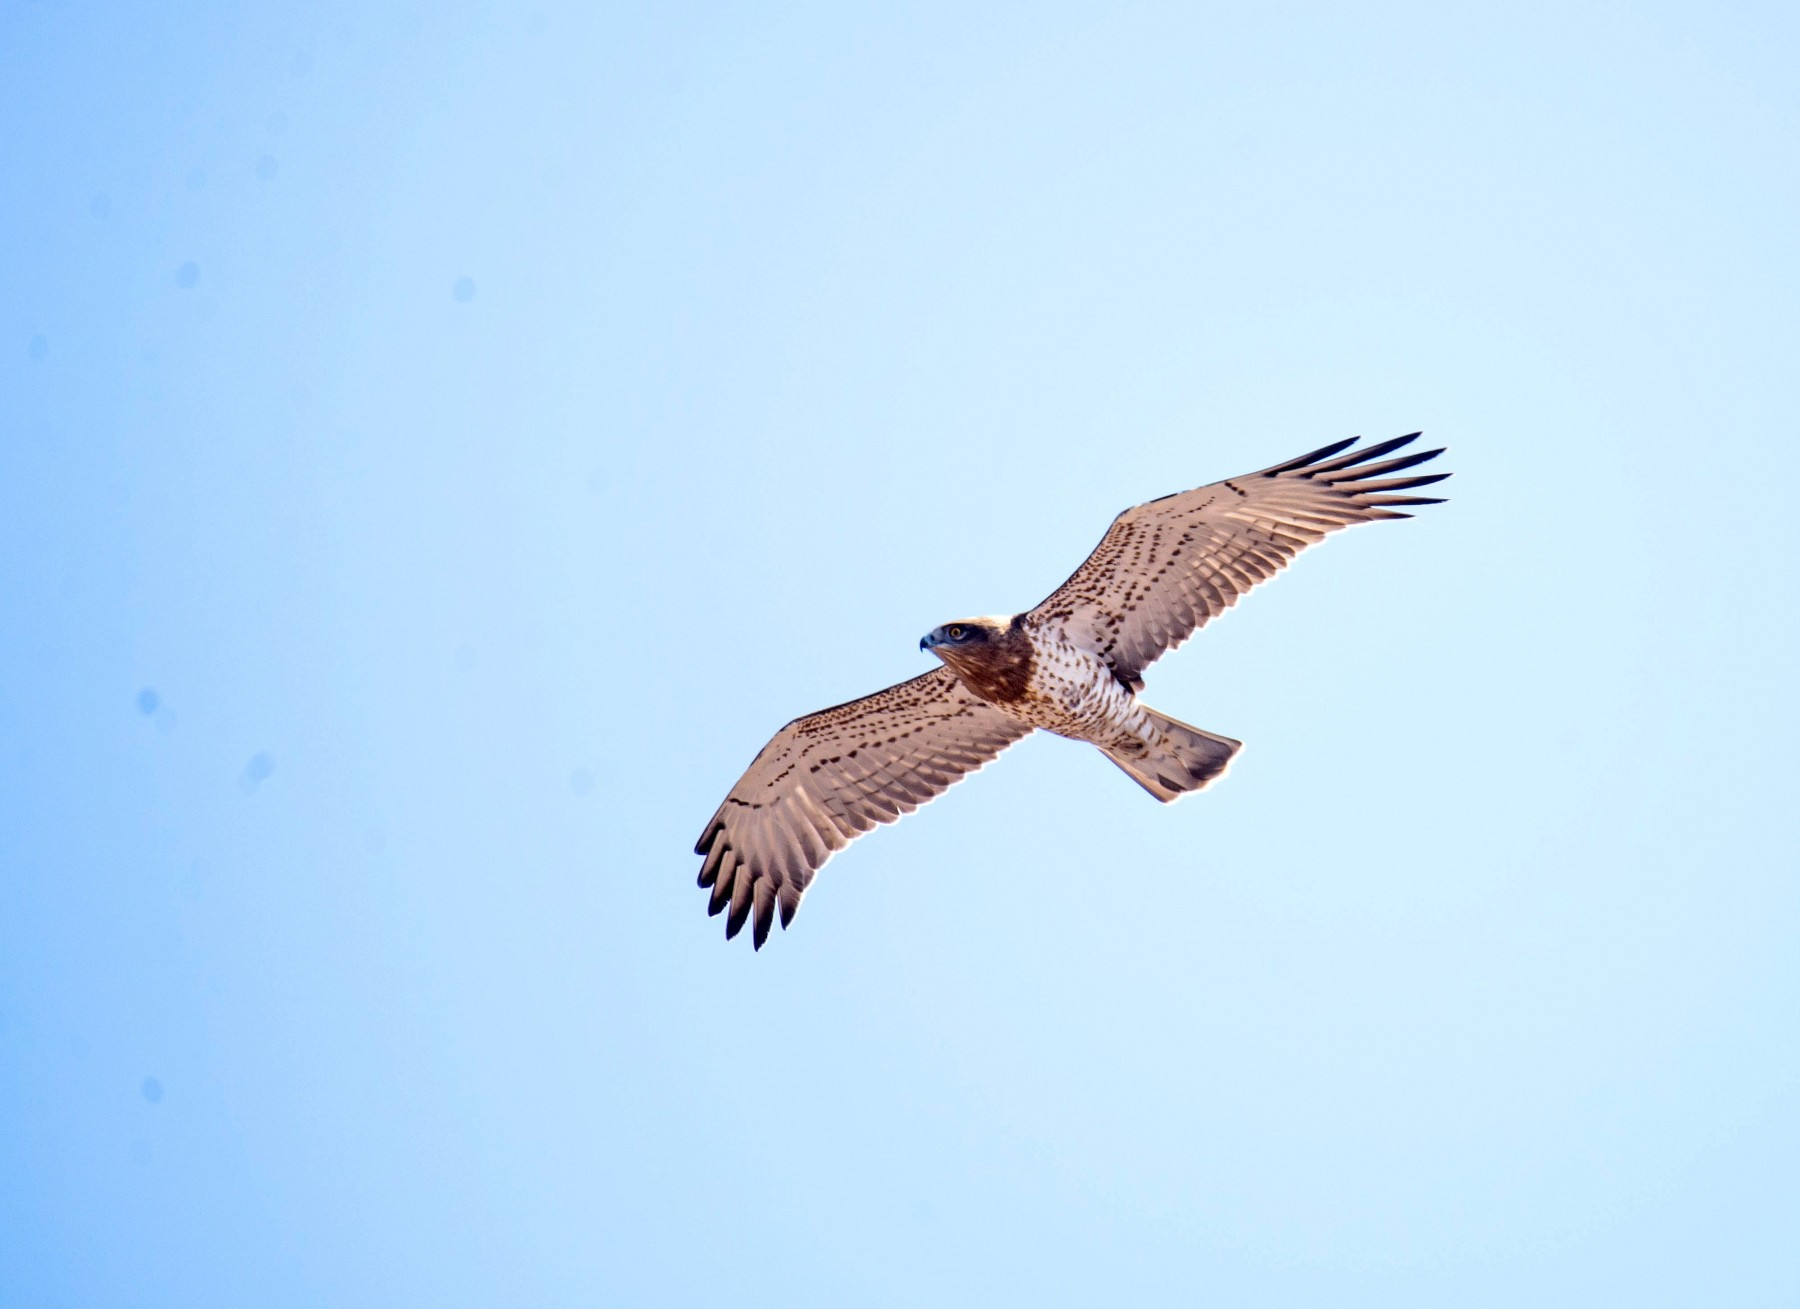 Short-toed Eagle flying